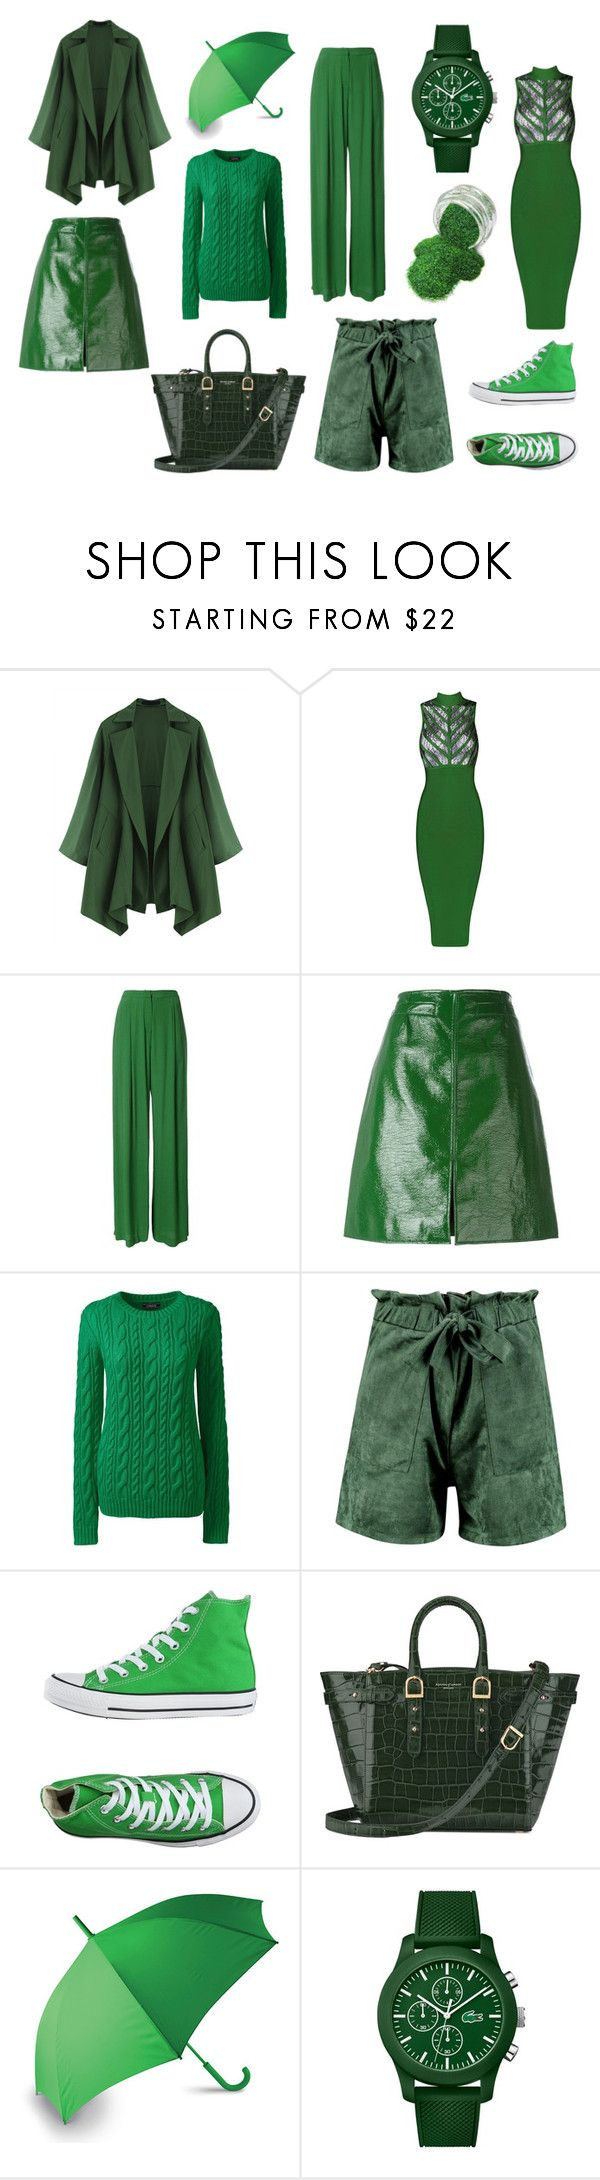 """GREEN"" by carme-vidal on Polyvore featuring moda, Bianca Spender, Courrèges, Lands' End, Boohoo, Converse, Aspinal of London, LEXON y Lacoste"